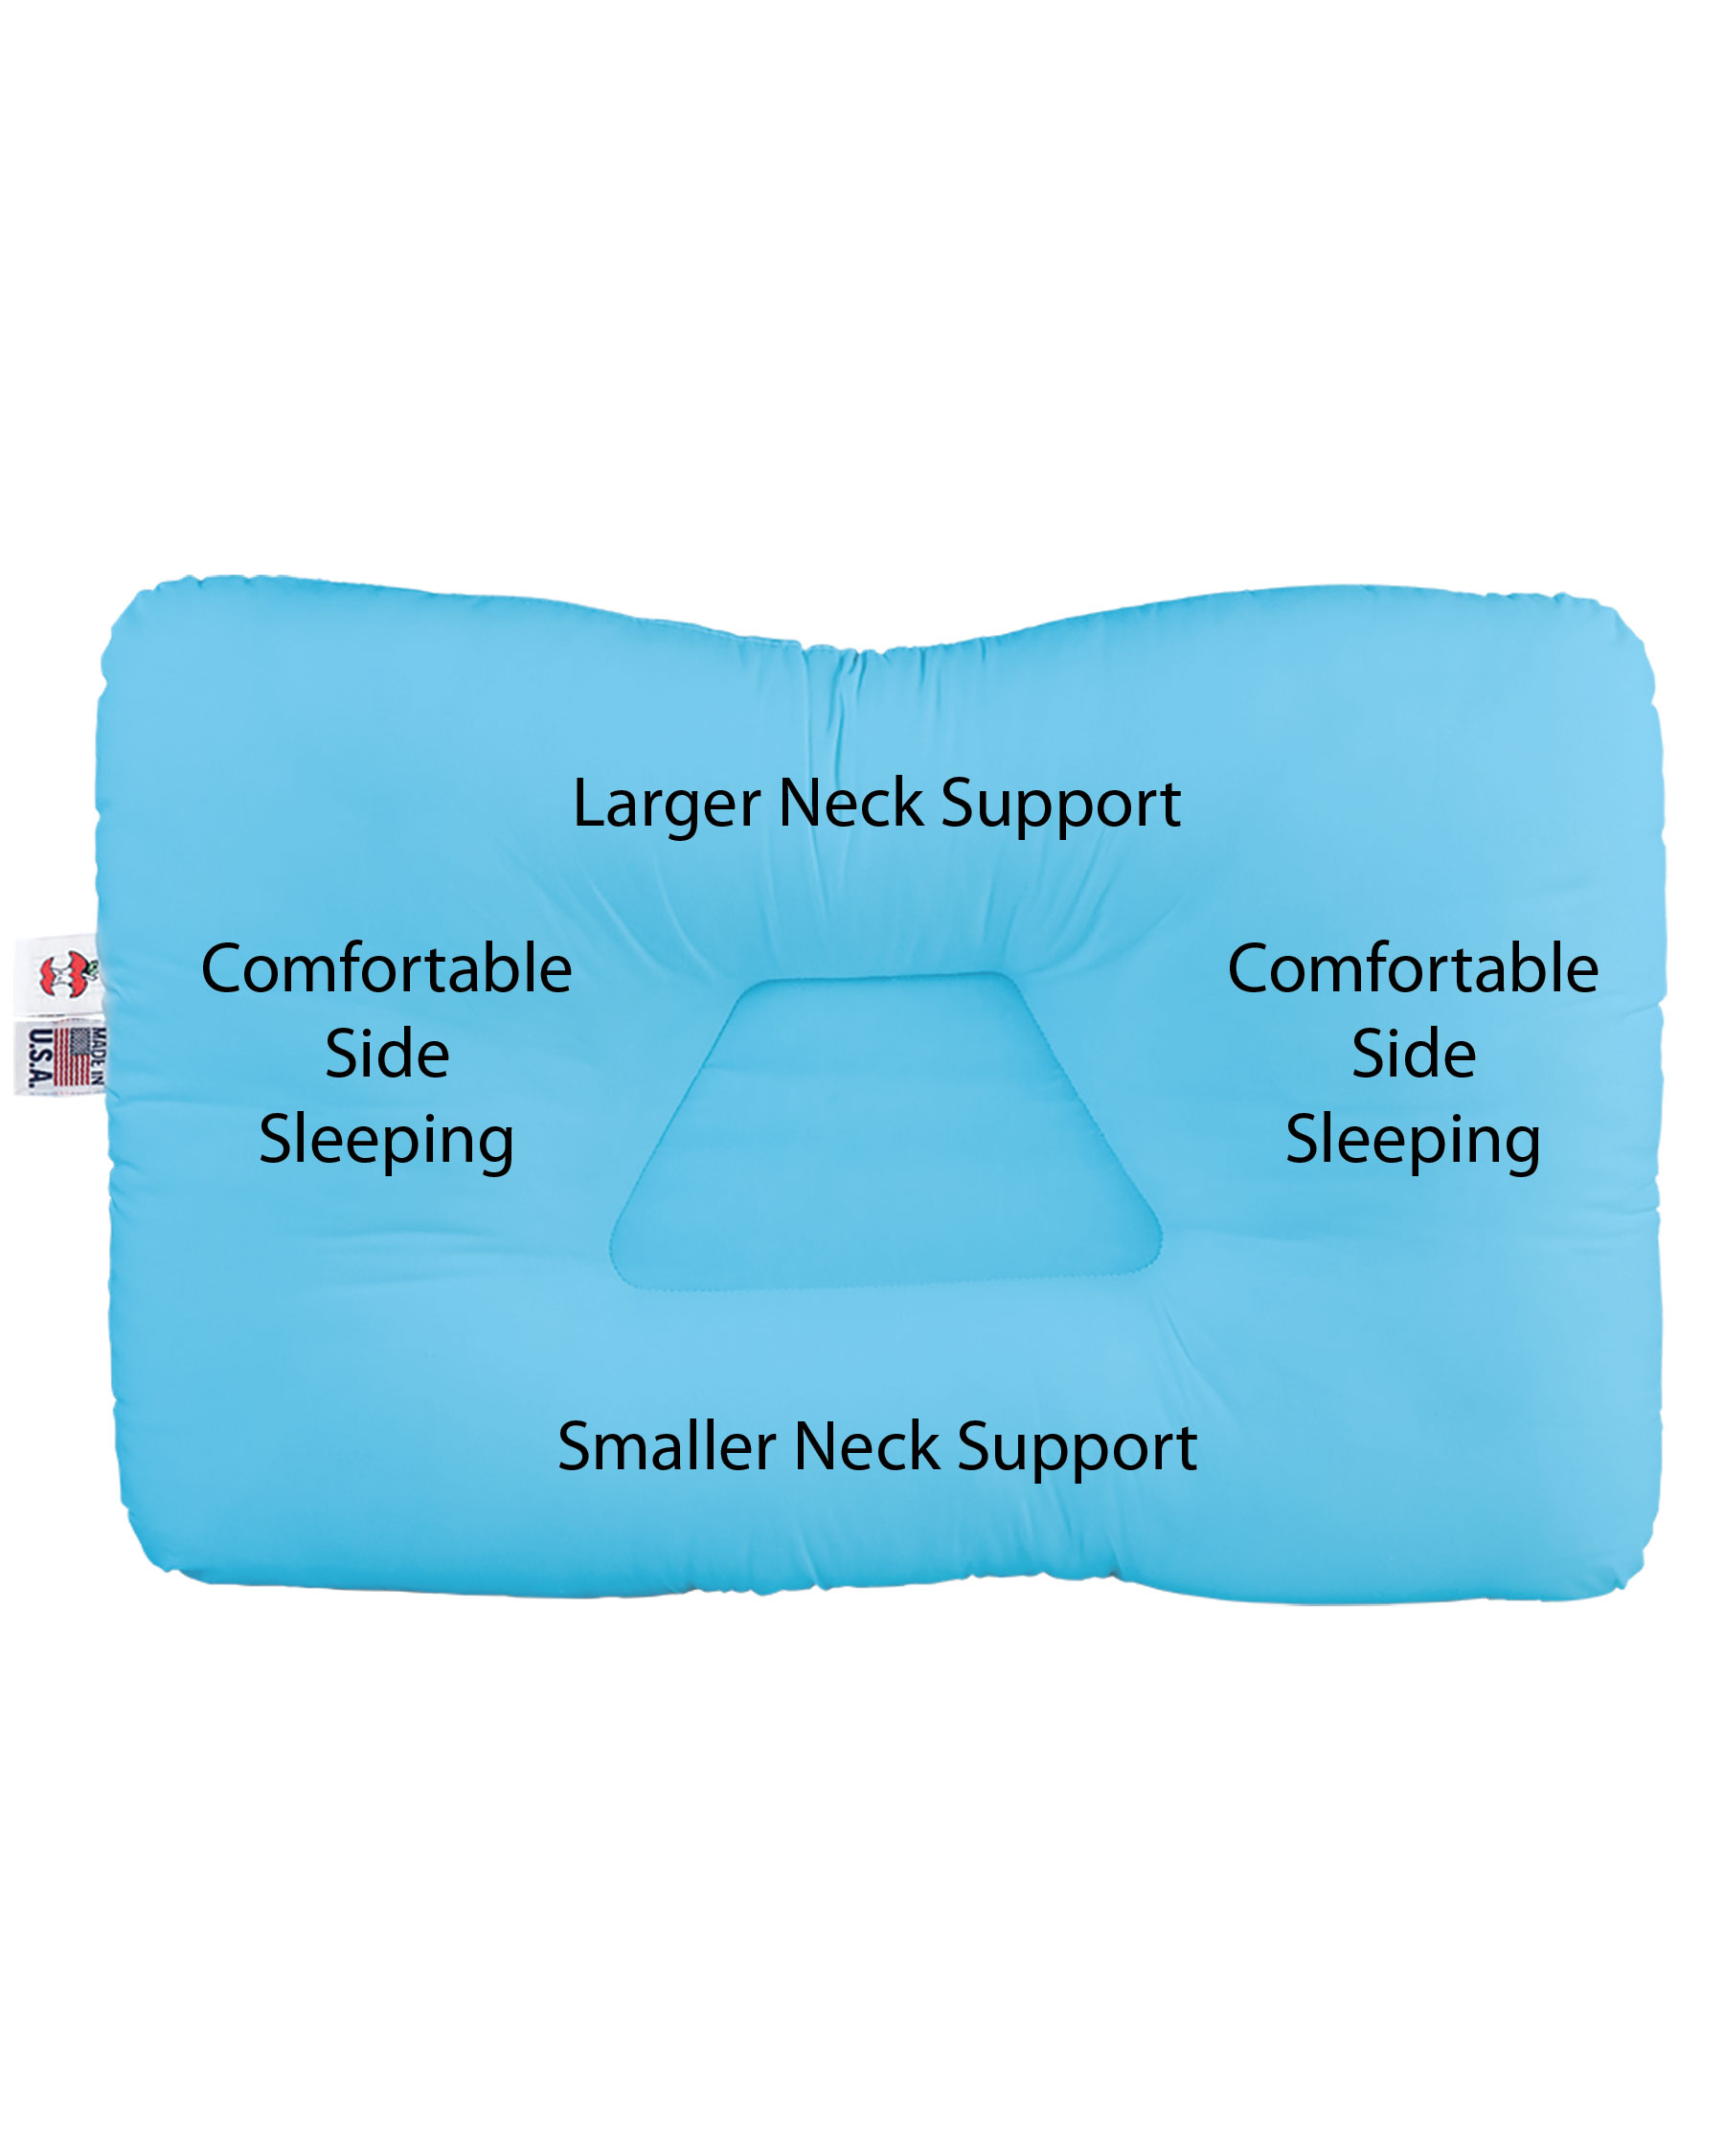 detail size after postnatal tri tummy hysterectomy cervical back products postsurgery gabrialla ebay and recovery postoperative core gentle pillow mid